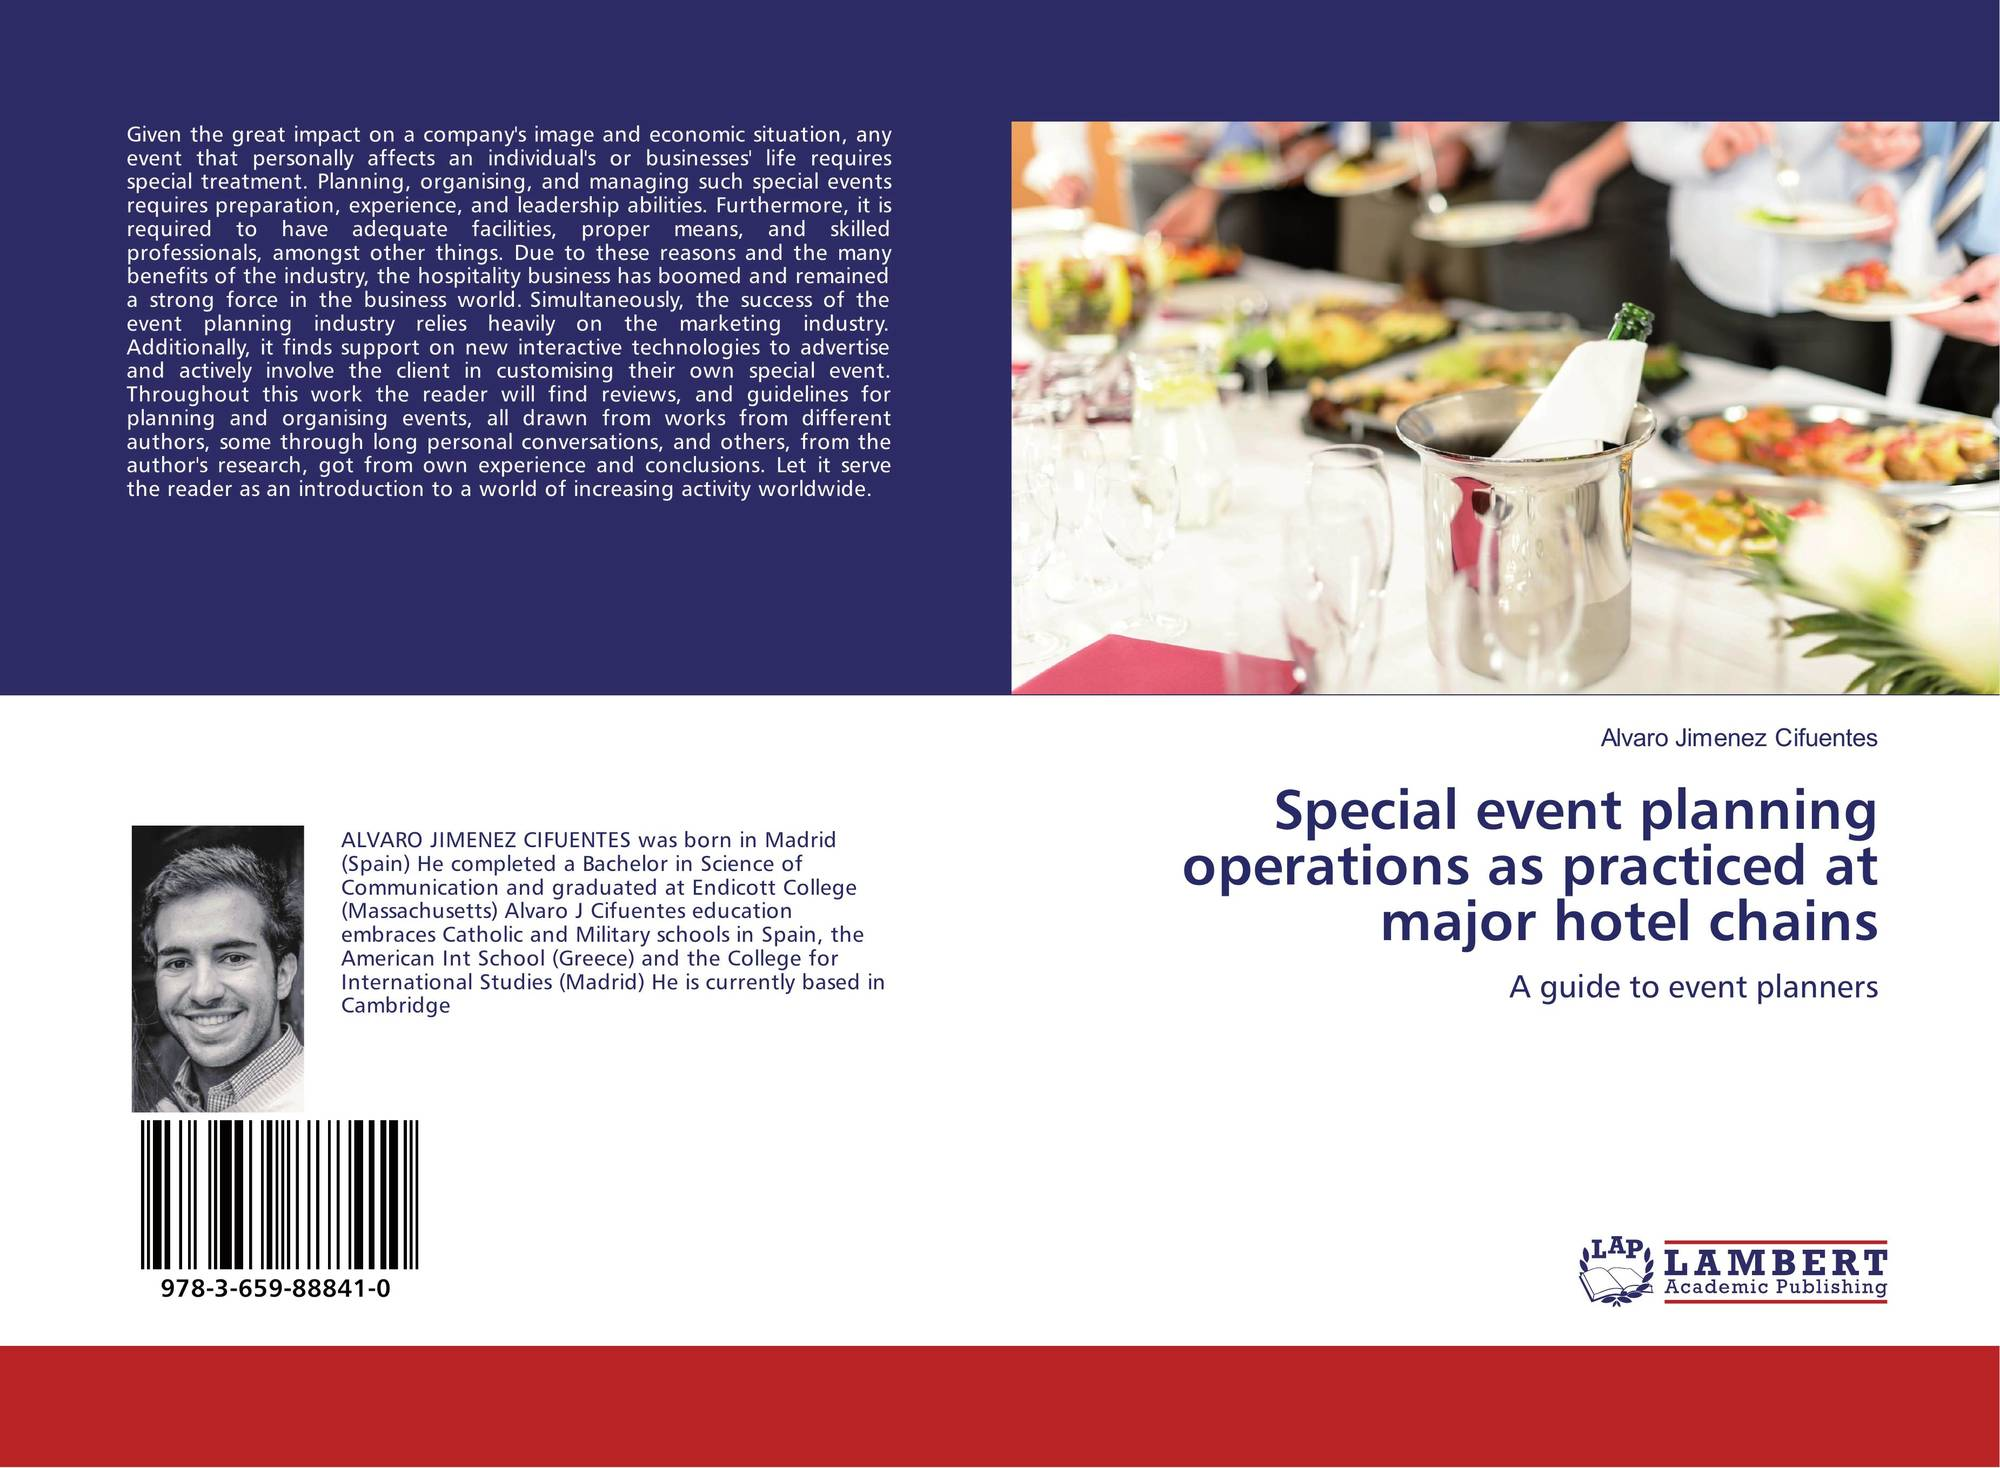 Special Event Planning Operations As Practiced At Major